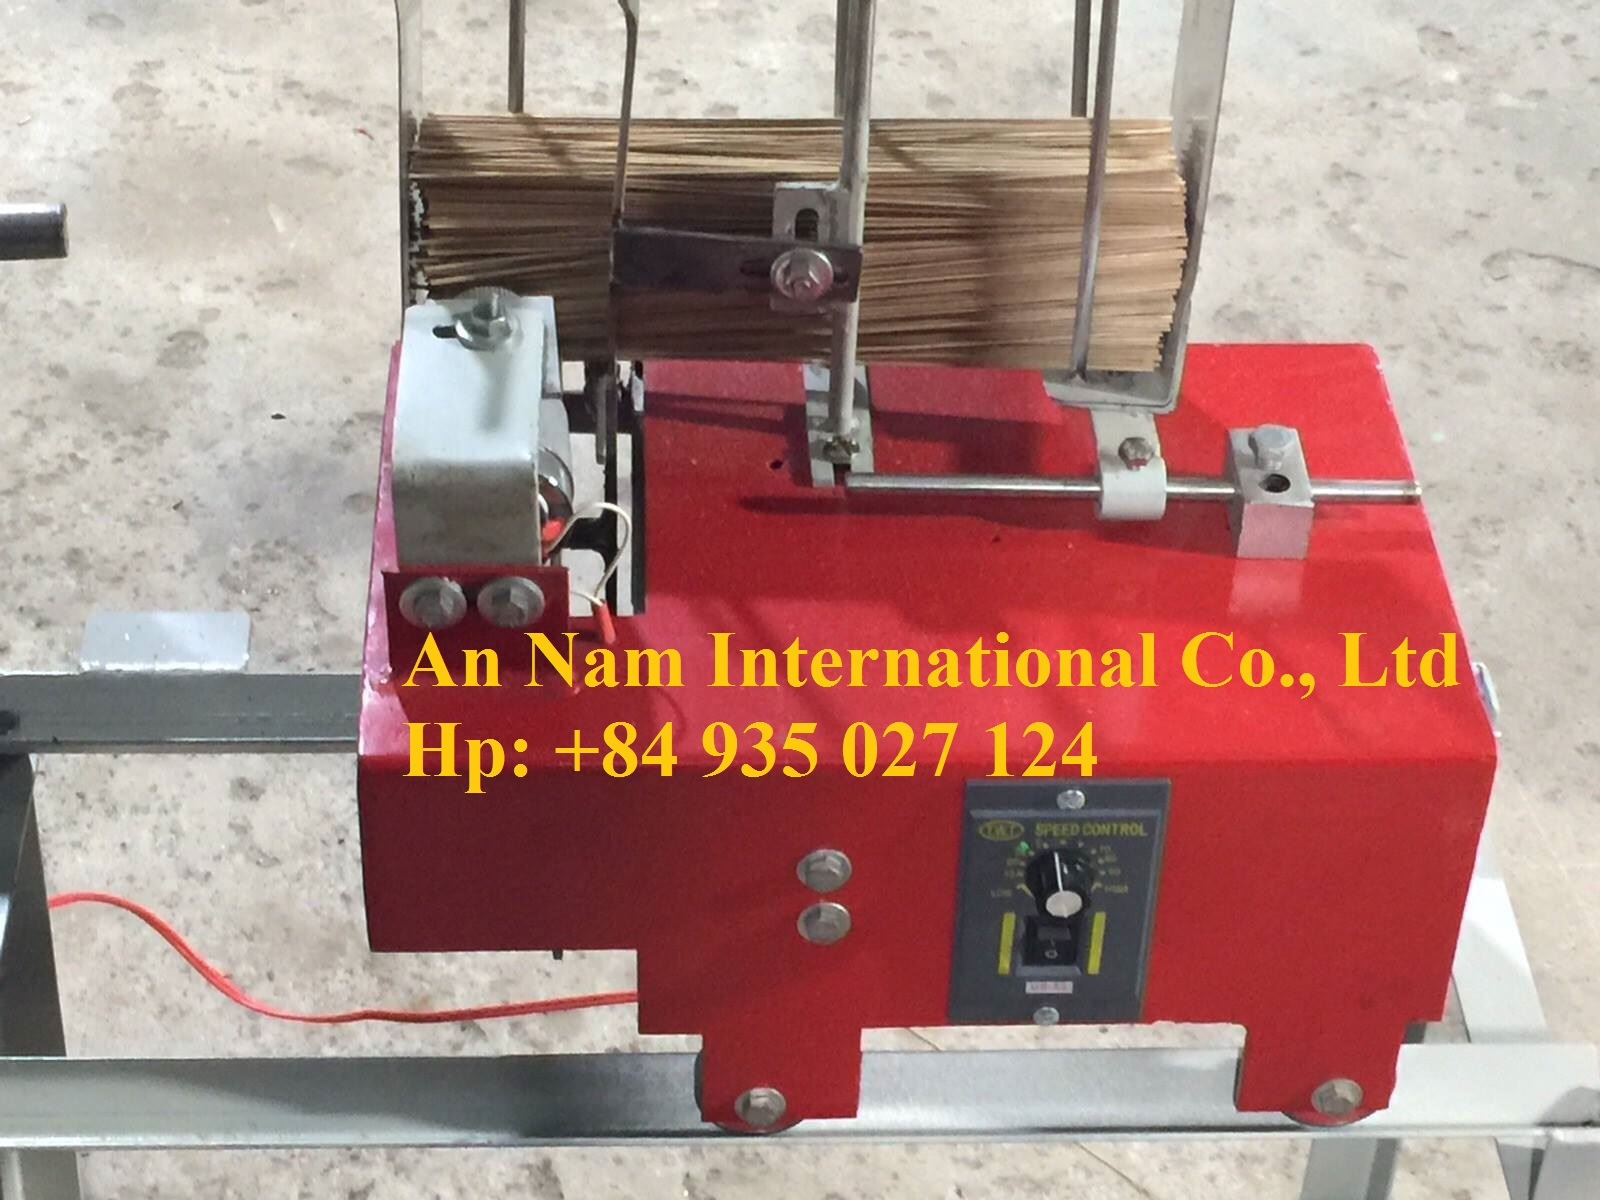 Auto feeder for incense making machine + 84 935 027 124 / Viber/WhatsApp/